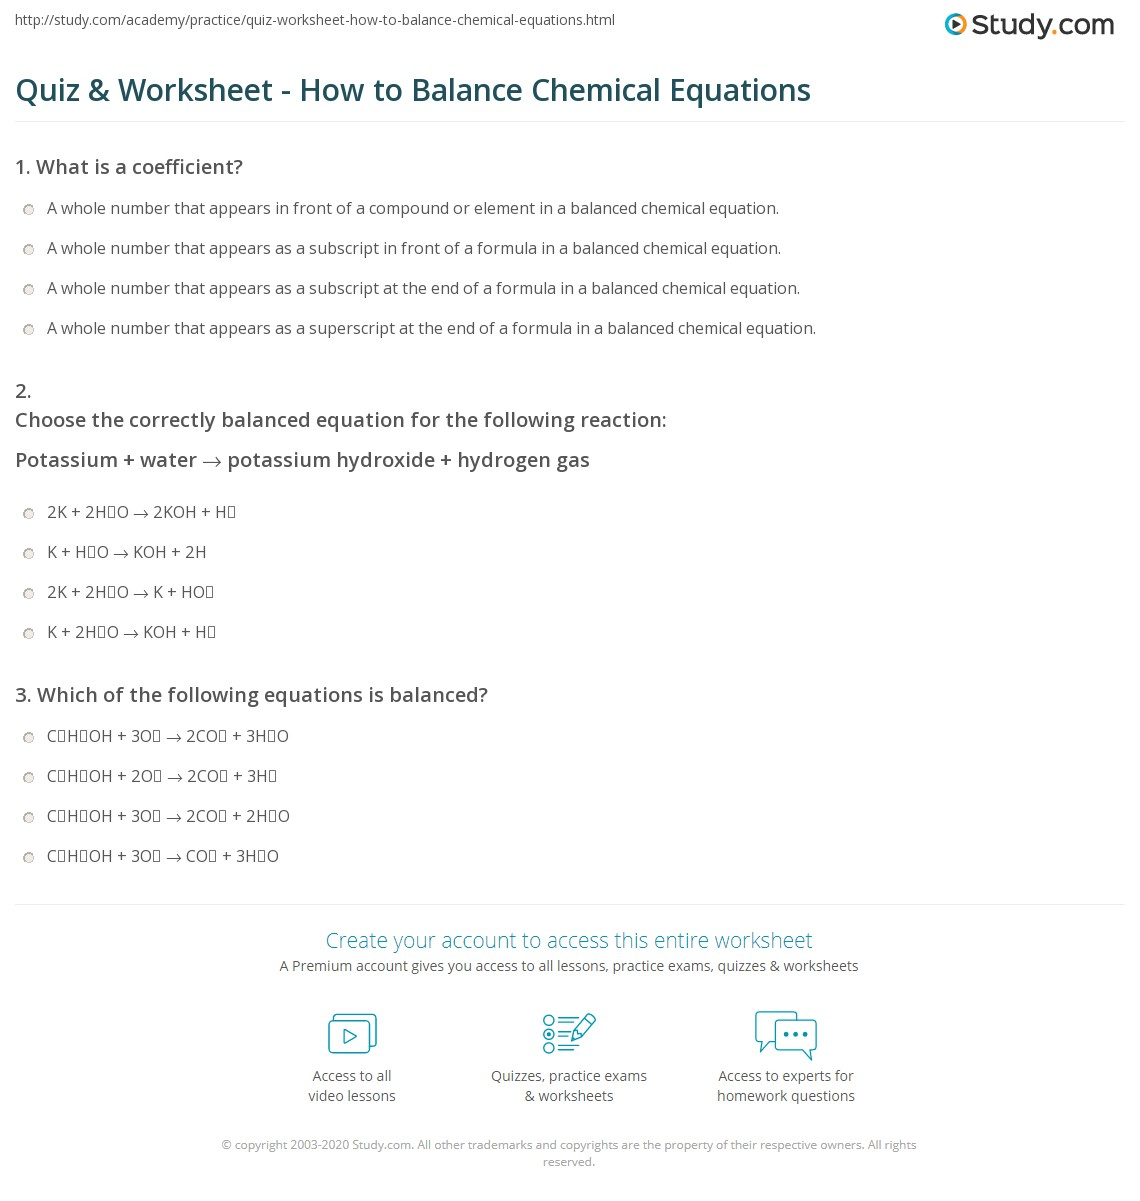 Quiz Worksheet How to Balance Chemical Equations – Balancing Chemical Equations Worksheet 2